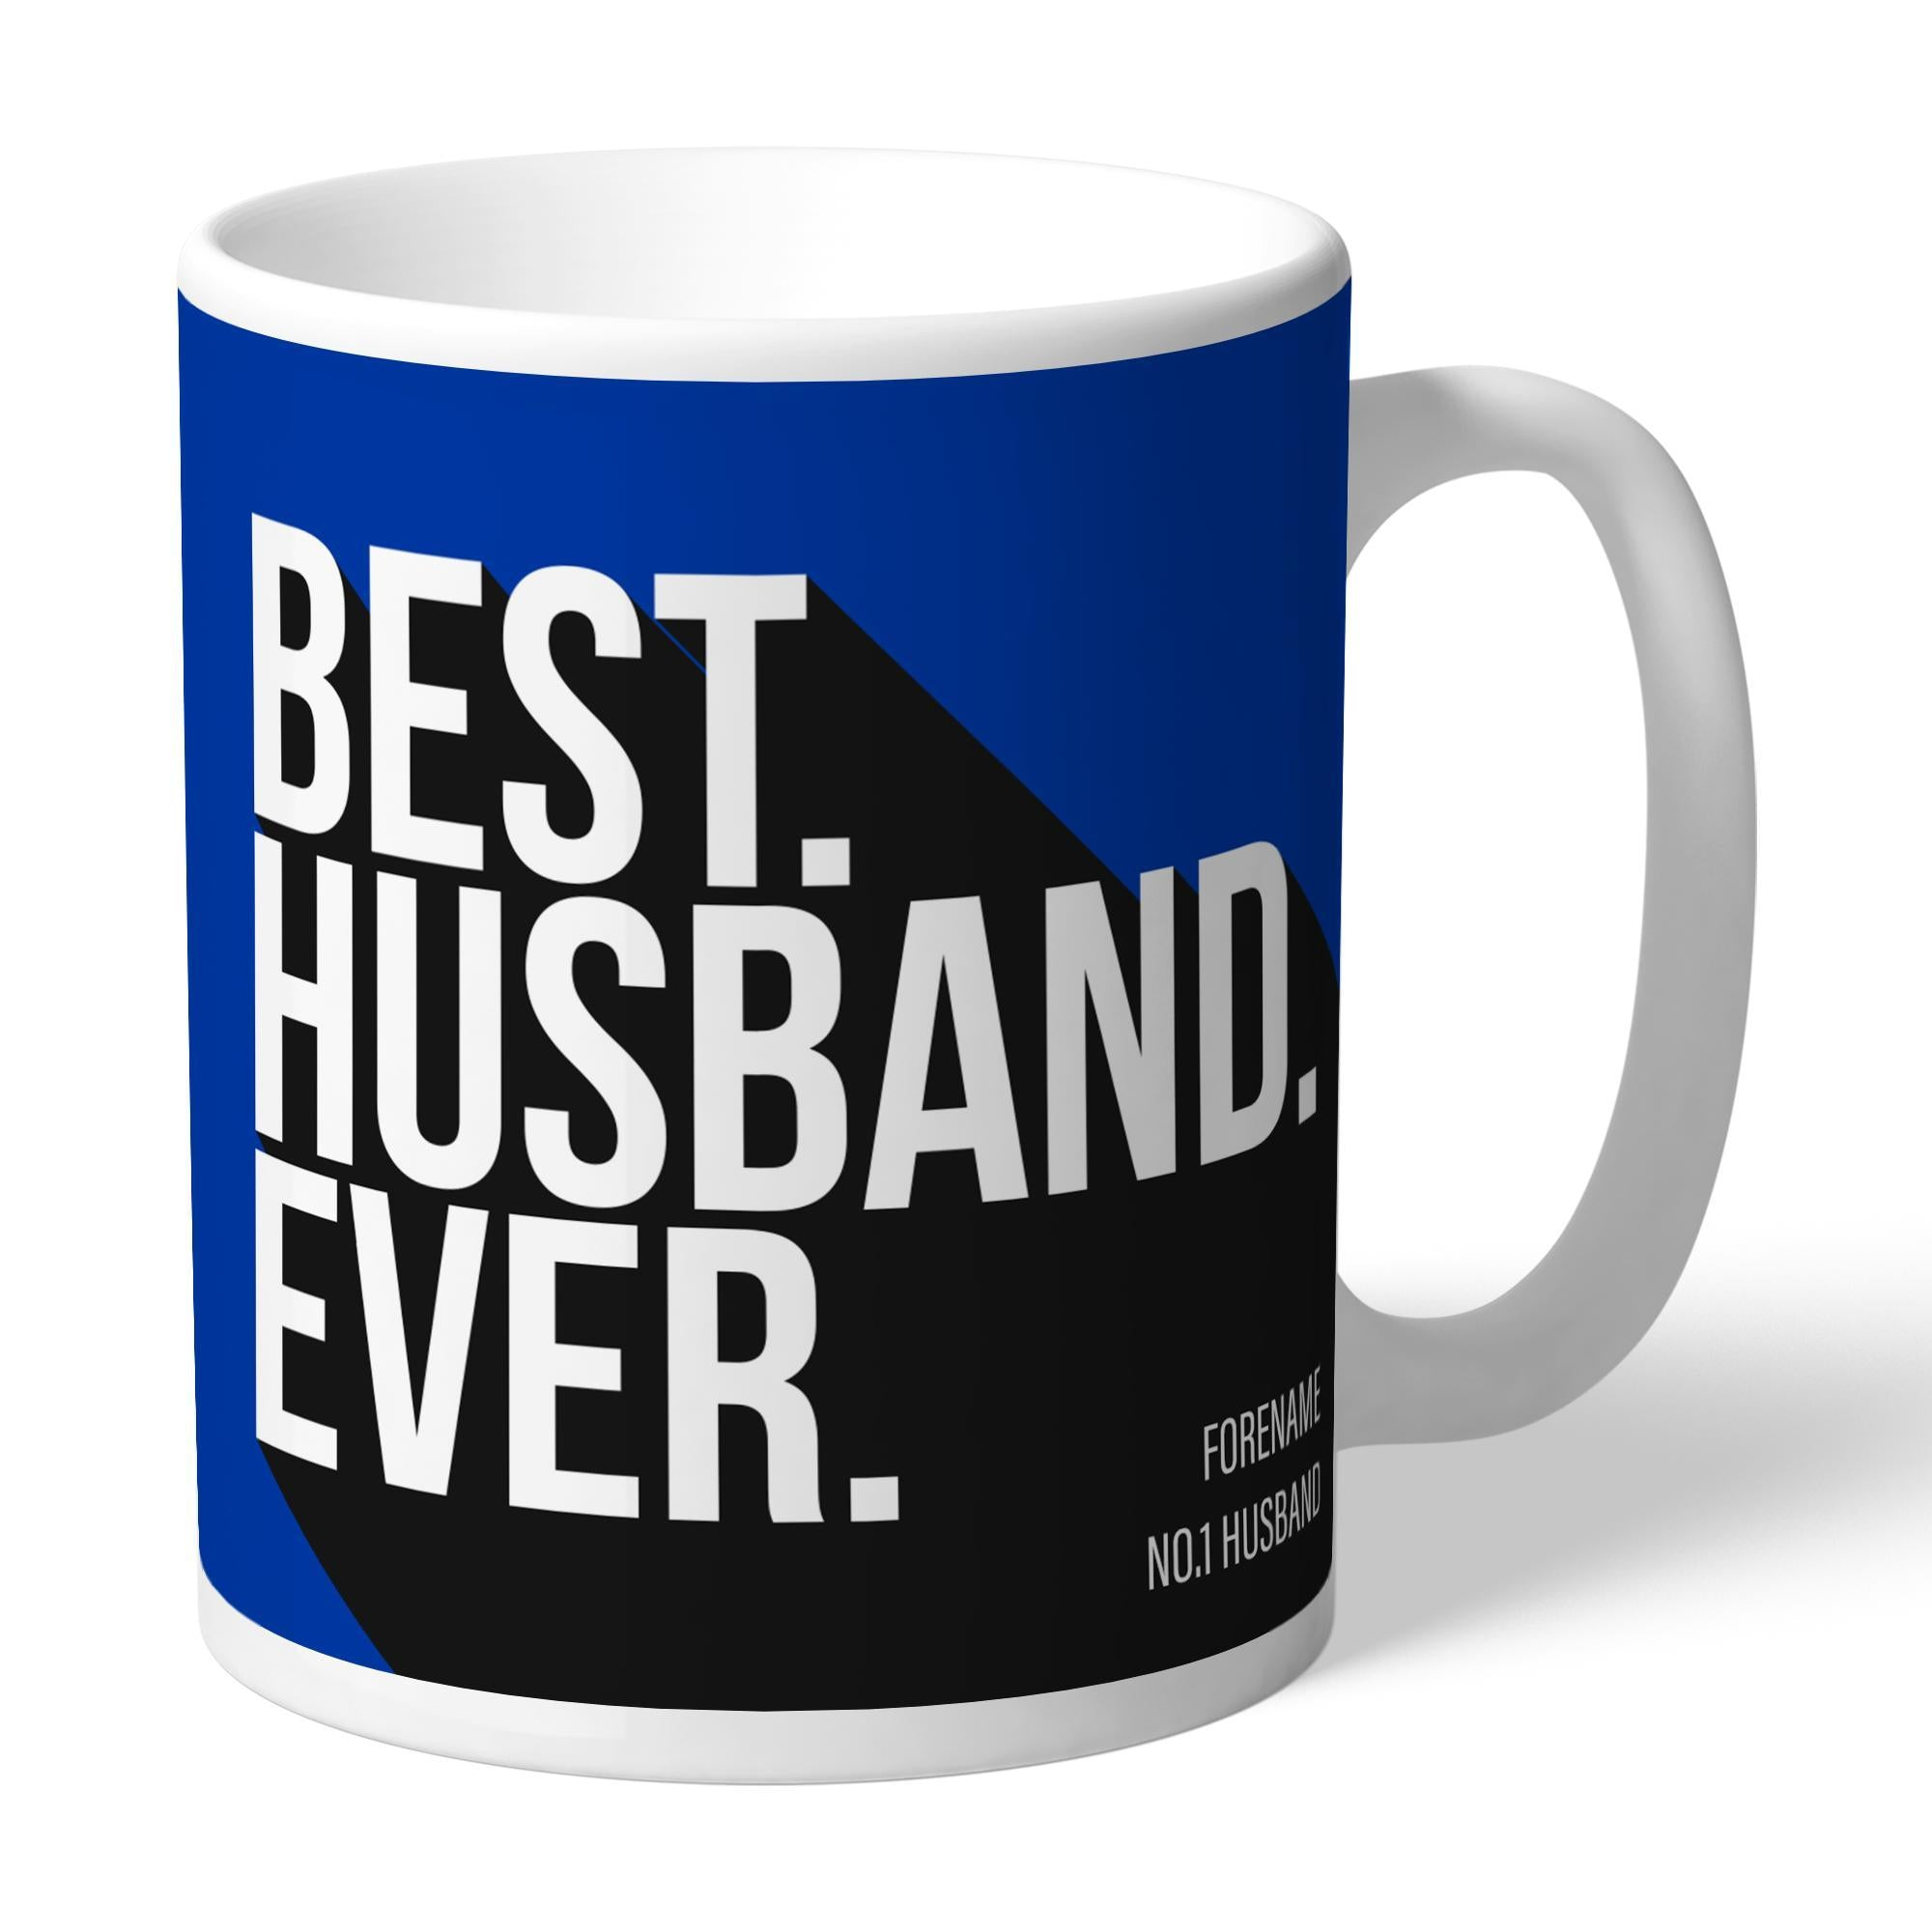 Personalised Brighton & Hove Albion FC Best Husband Ever Mug, Home & Garden by Glamorous Gifts